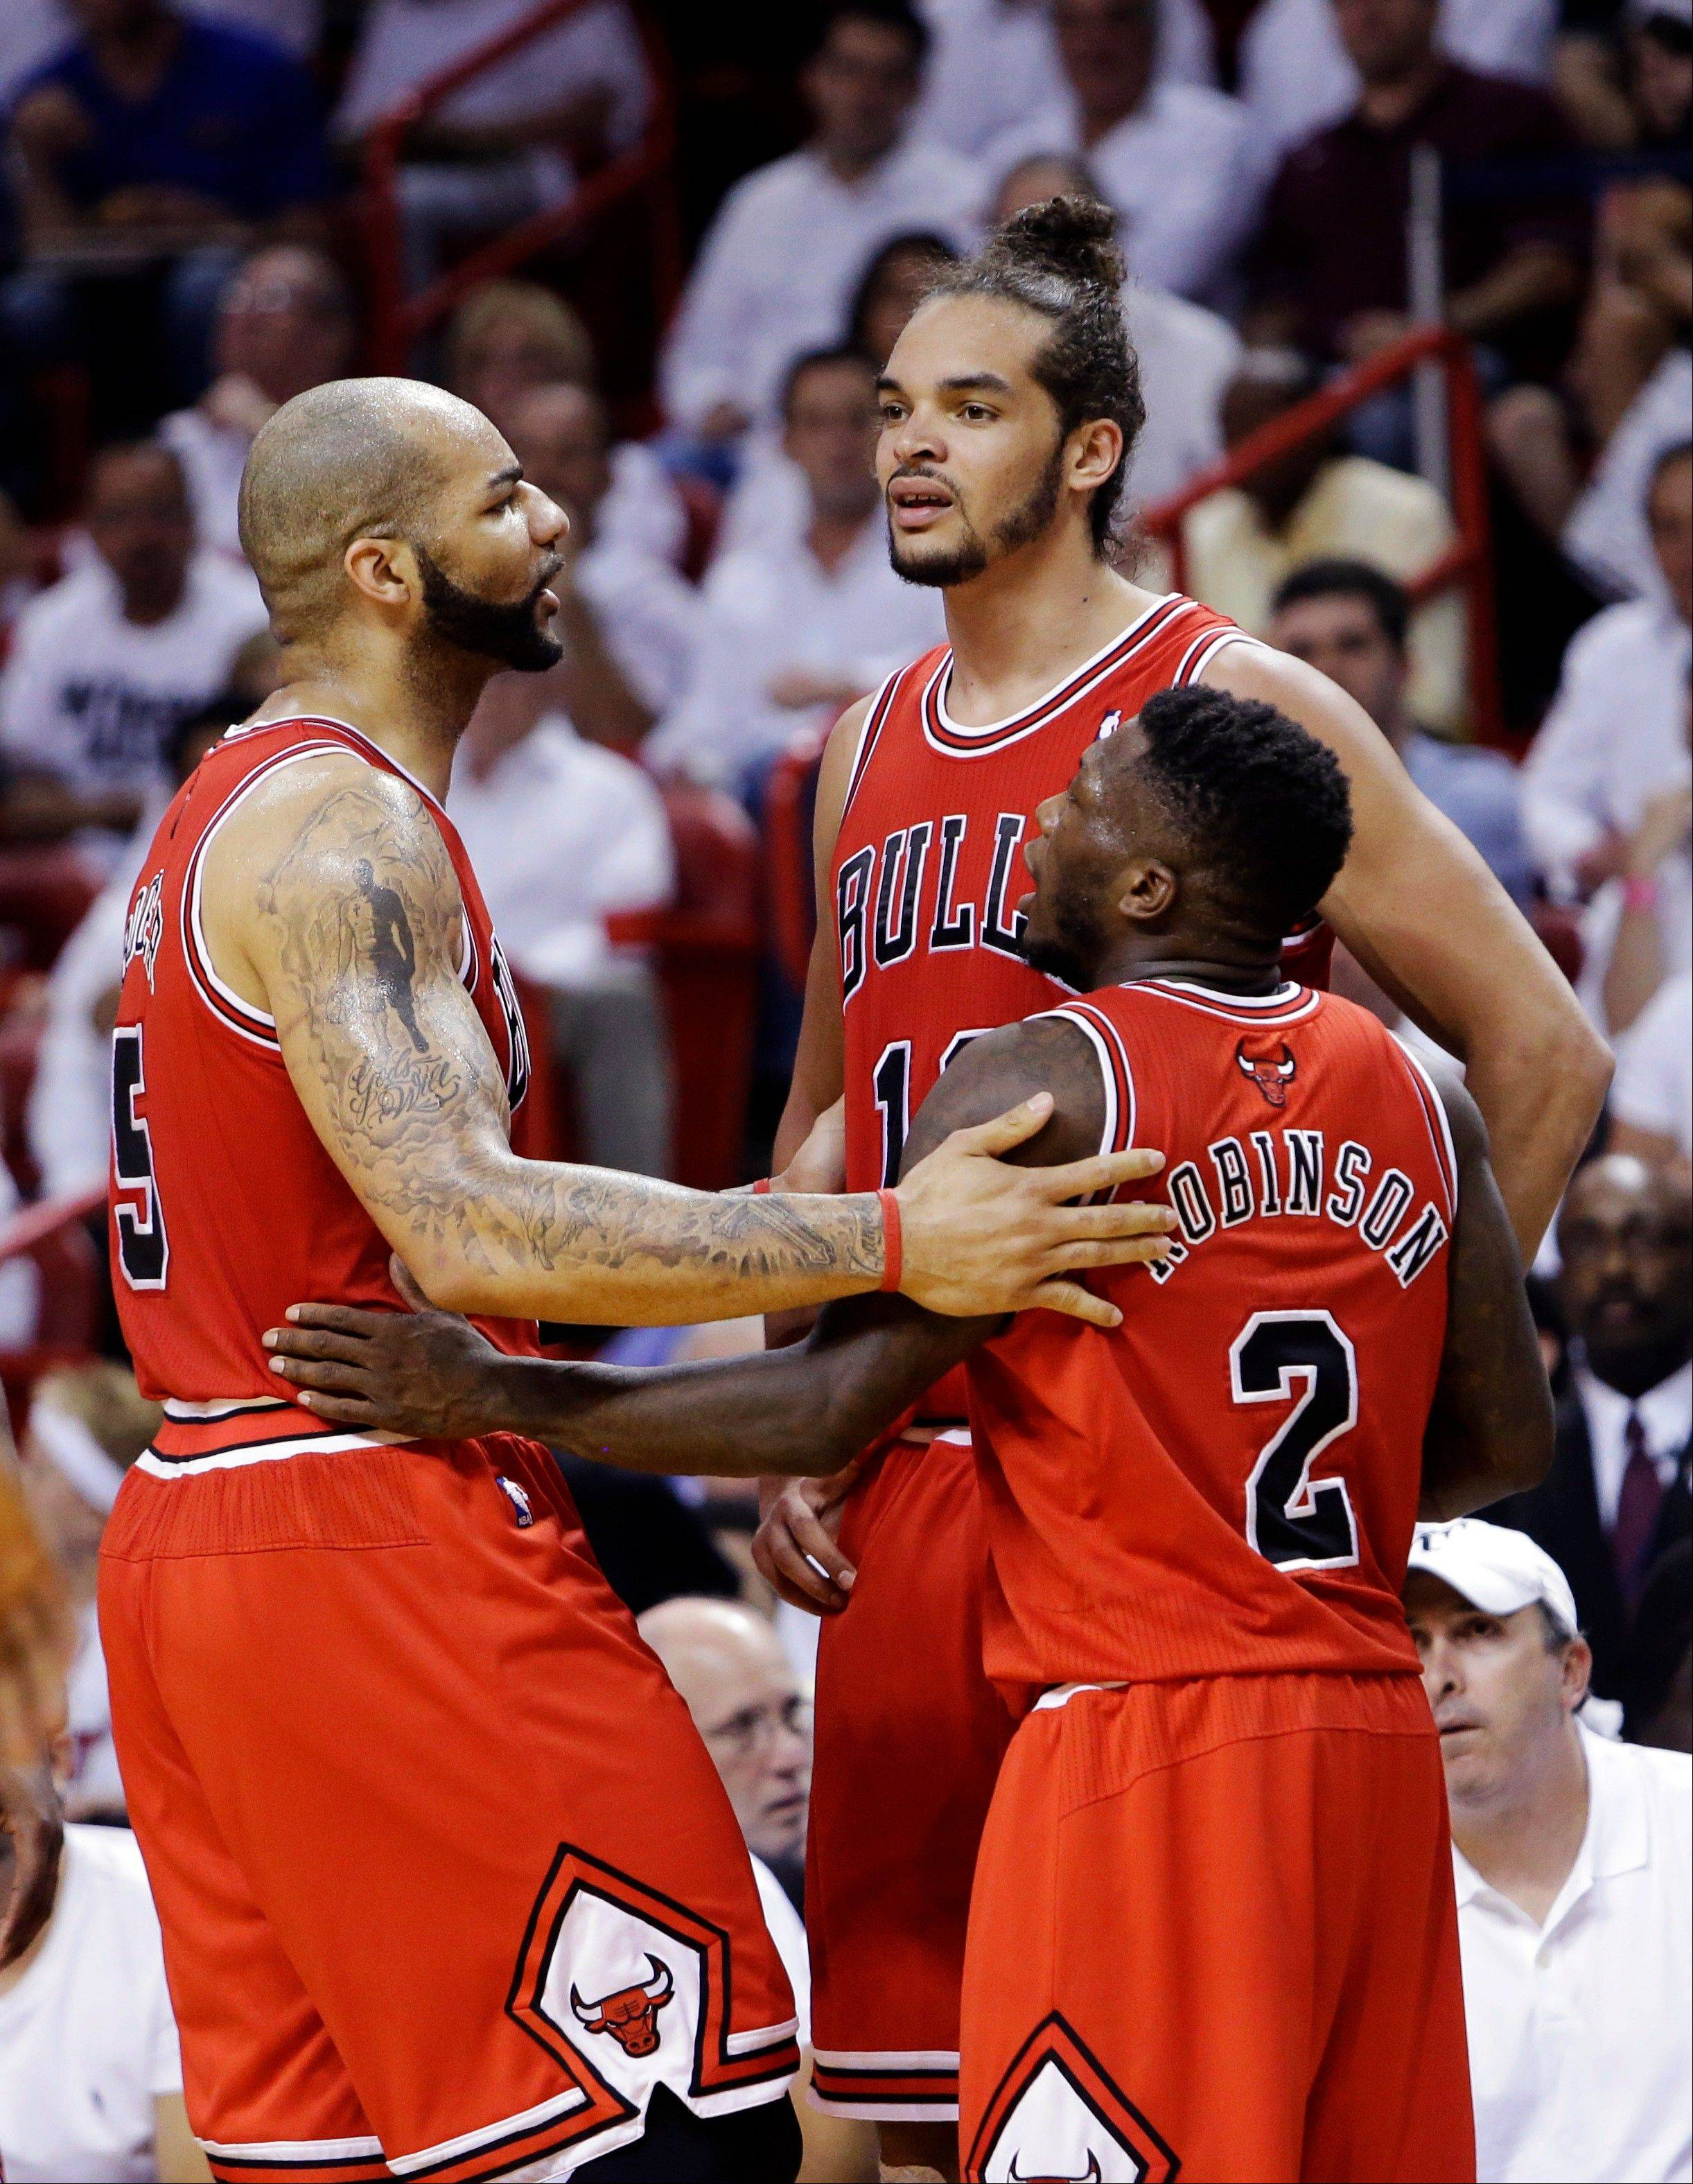 Chicago Bulls forward Carlos Boozer, left, center Joakim Noah, center, and guard Nate Robinson (2) huddle during the first half of Game 2 of their NBA basketball playoff series in the Eastern Conference semifinals against the Miami Heat, Wednesday, May 8, 2013, in Miami.